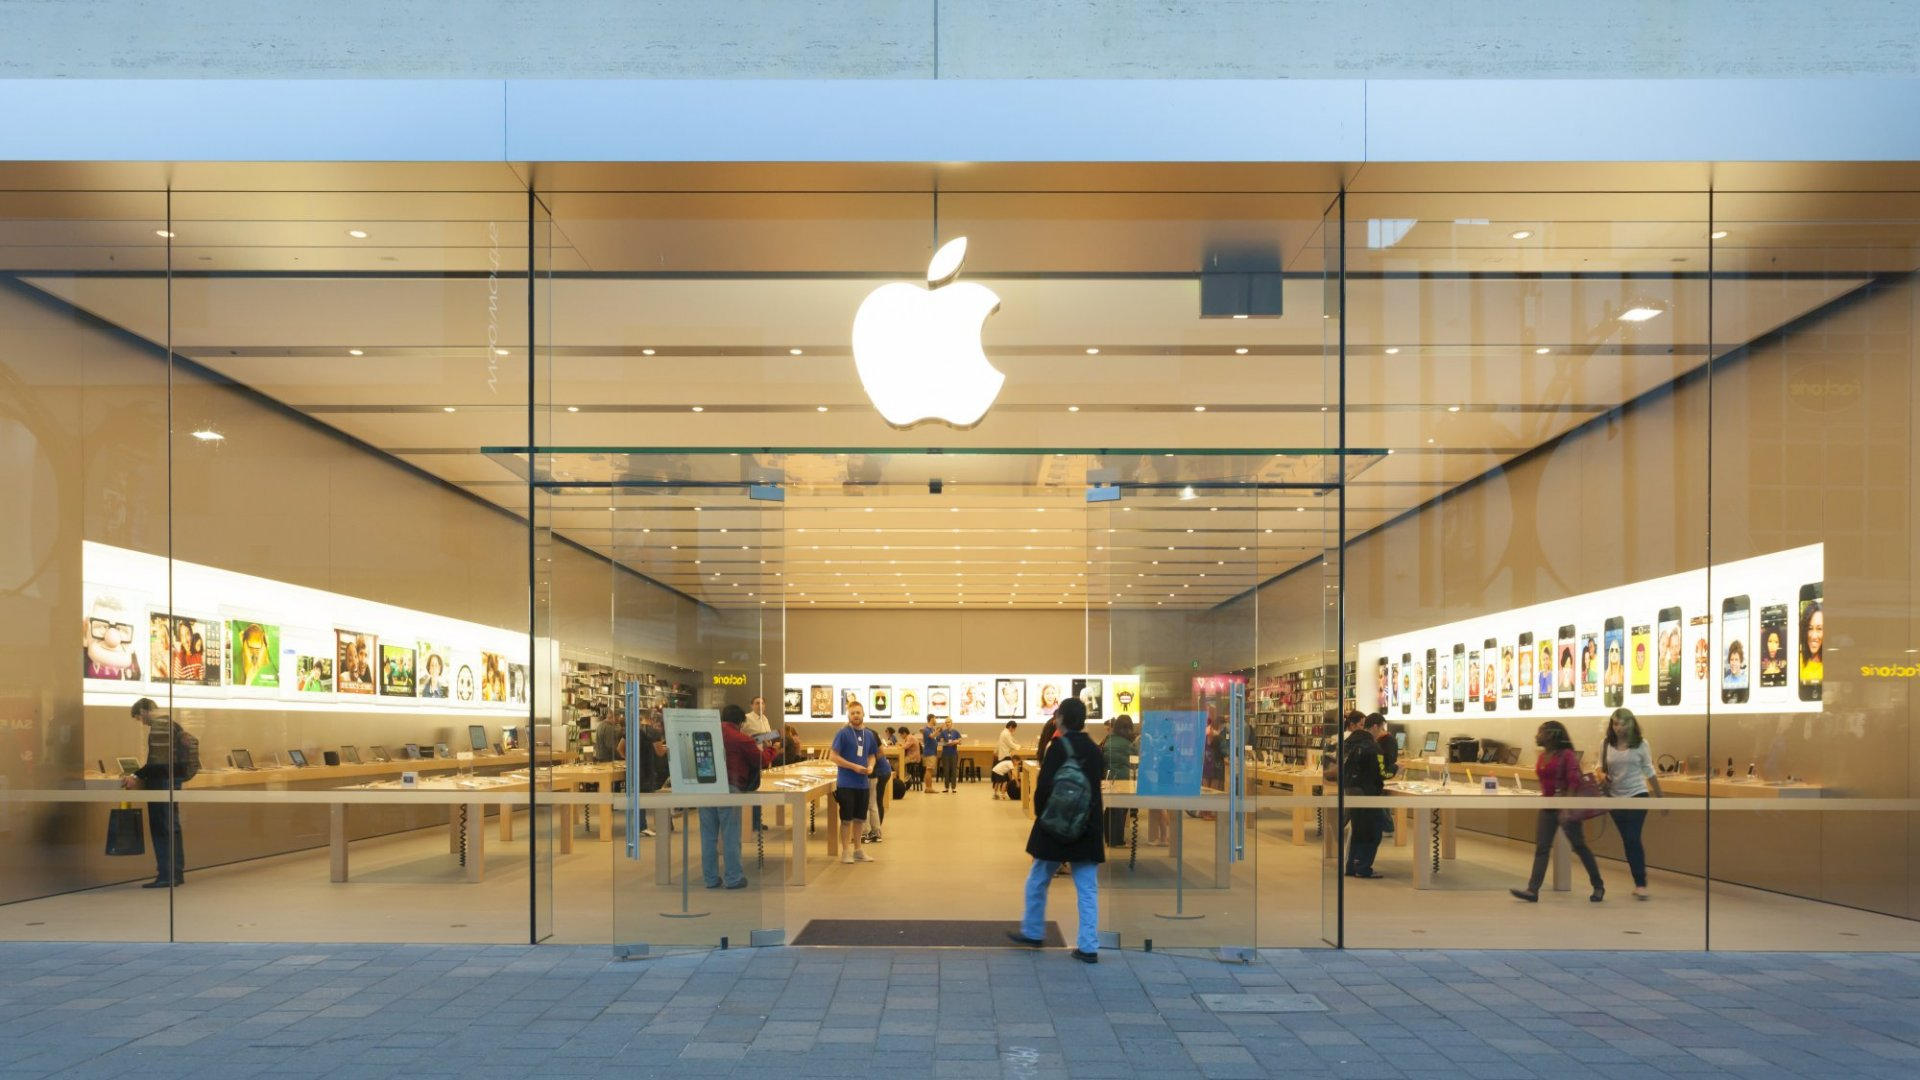 This Simple Email From Apple Is a Brilliant Example of How to Delight Your Customers